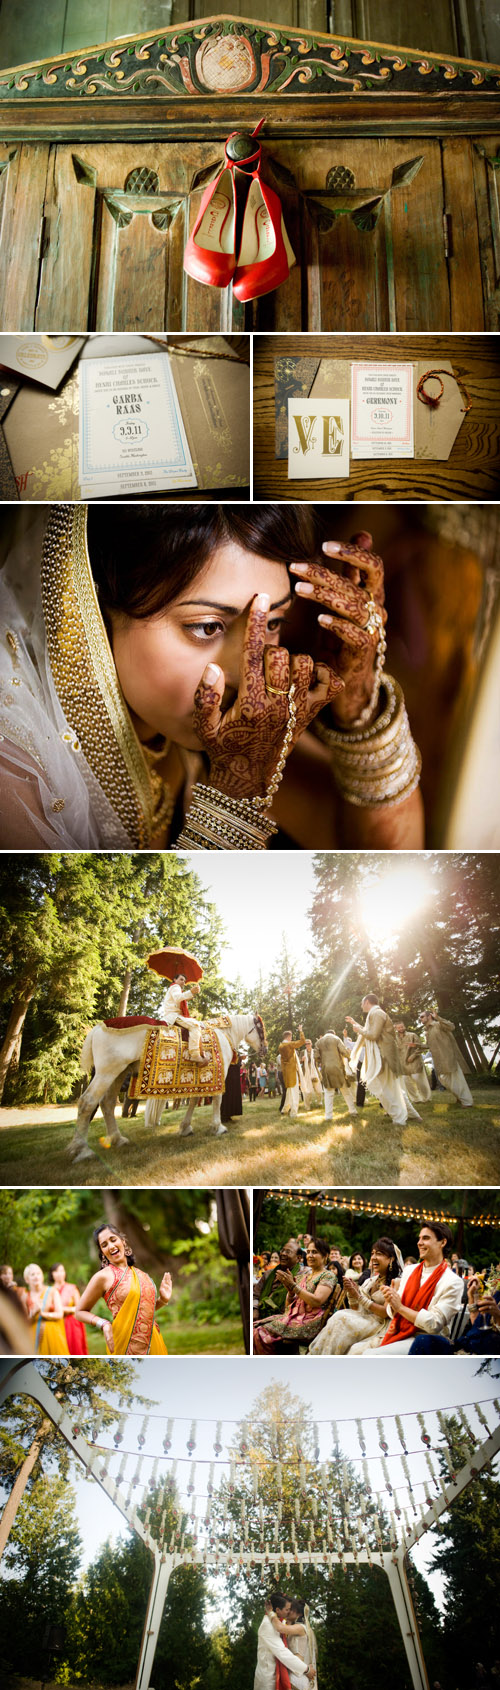 colorful Indian and American wedding planned by Jacky Grotle of Event Success and photographed by Joe and Jill Photography